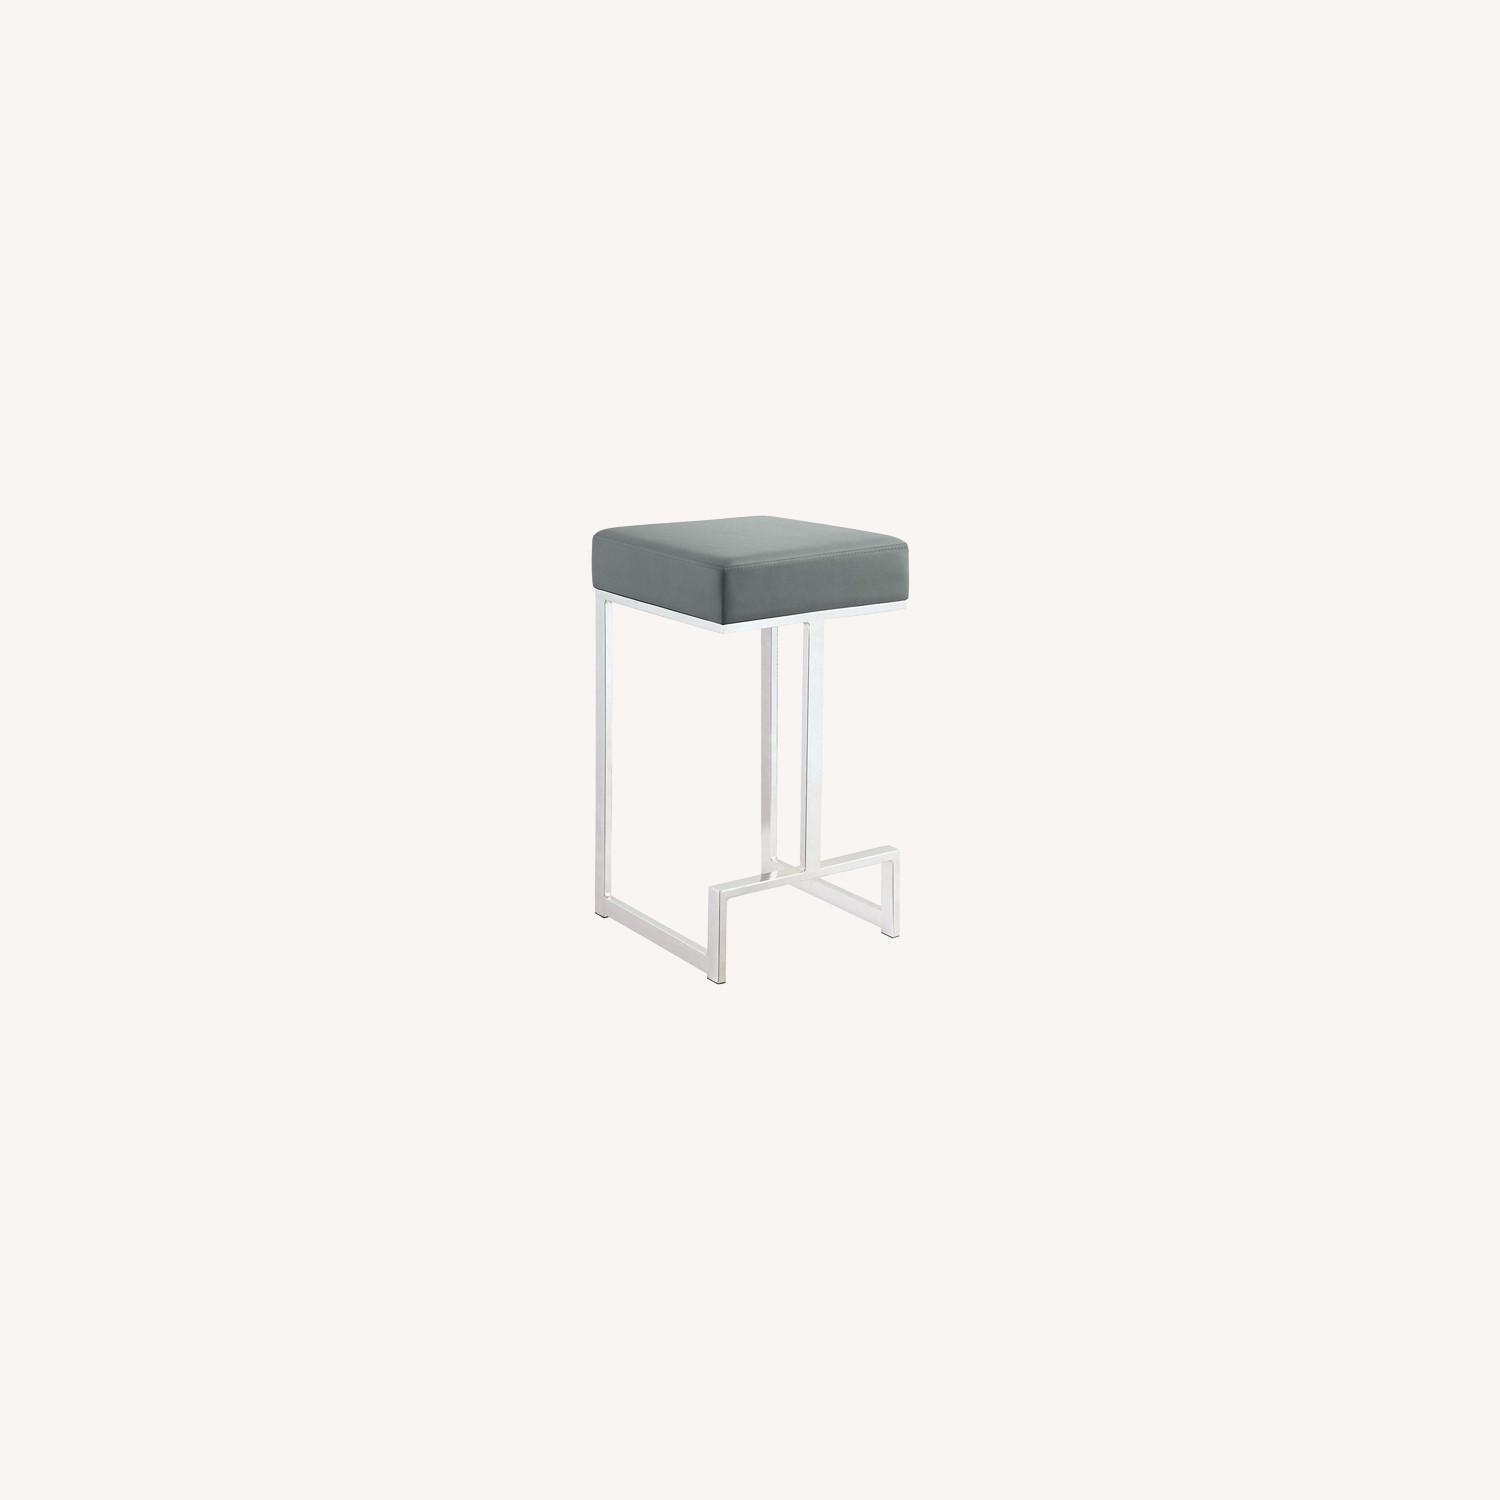 Modern Counter Height Stool In Grey Faux Leather - image-3